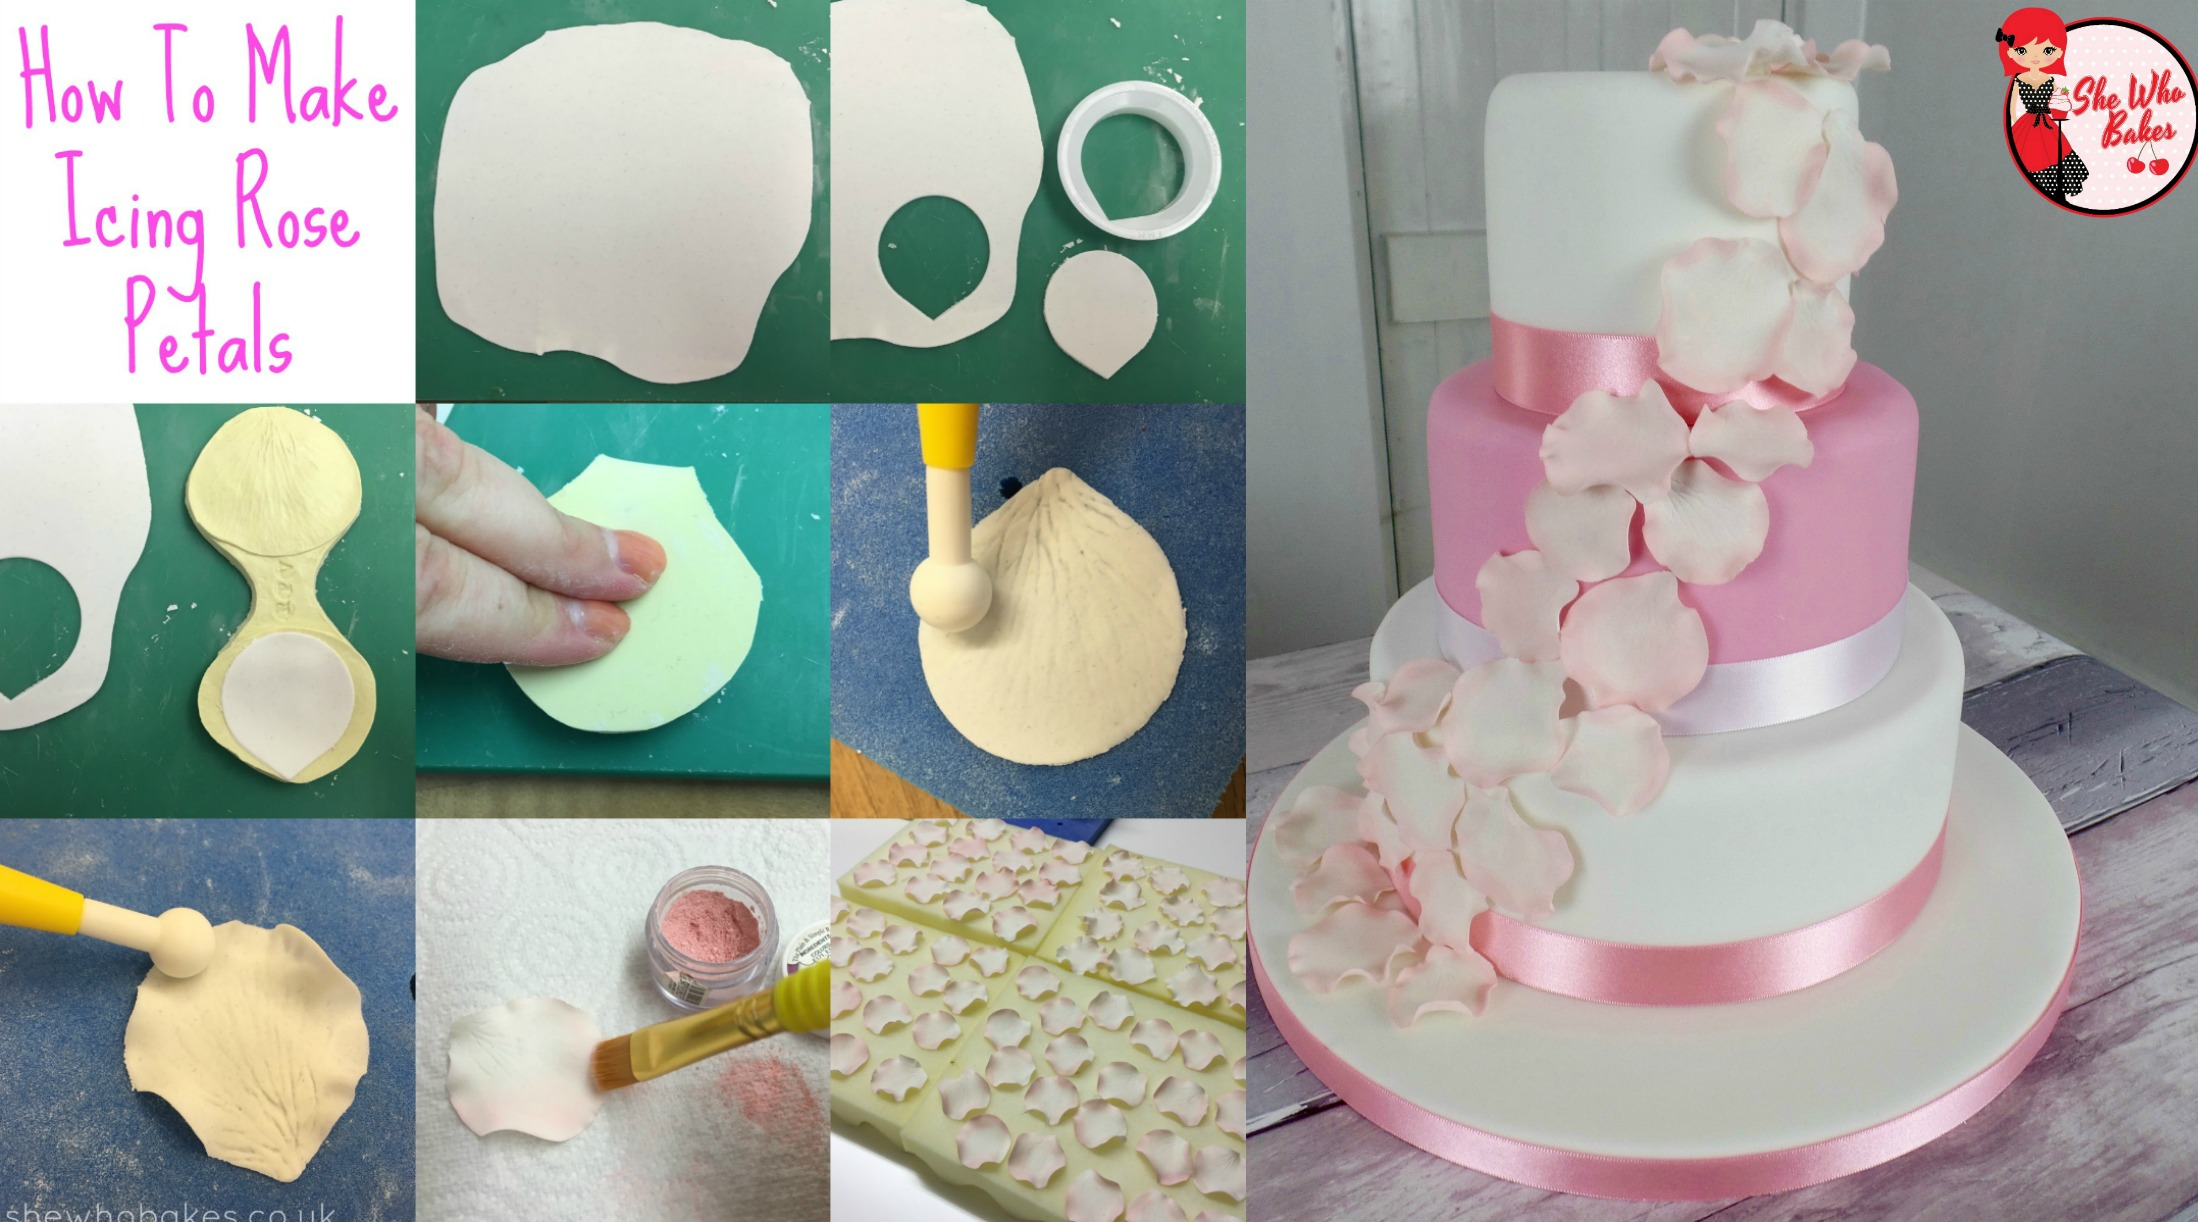 How To Make Spun Sugar Decorations For Cakes